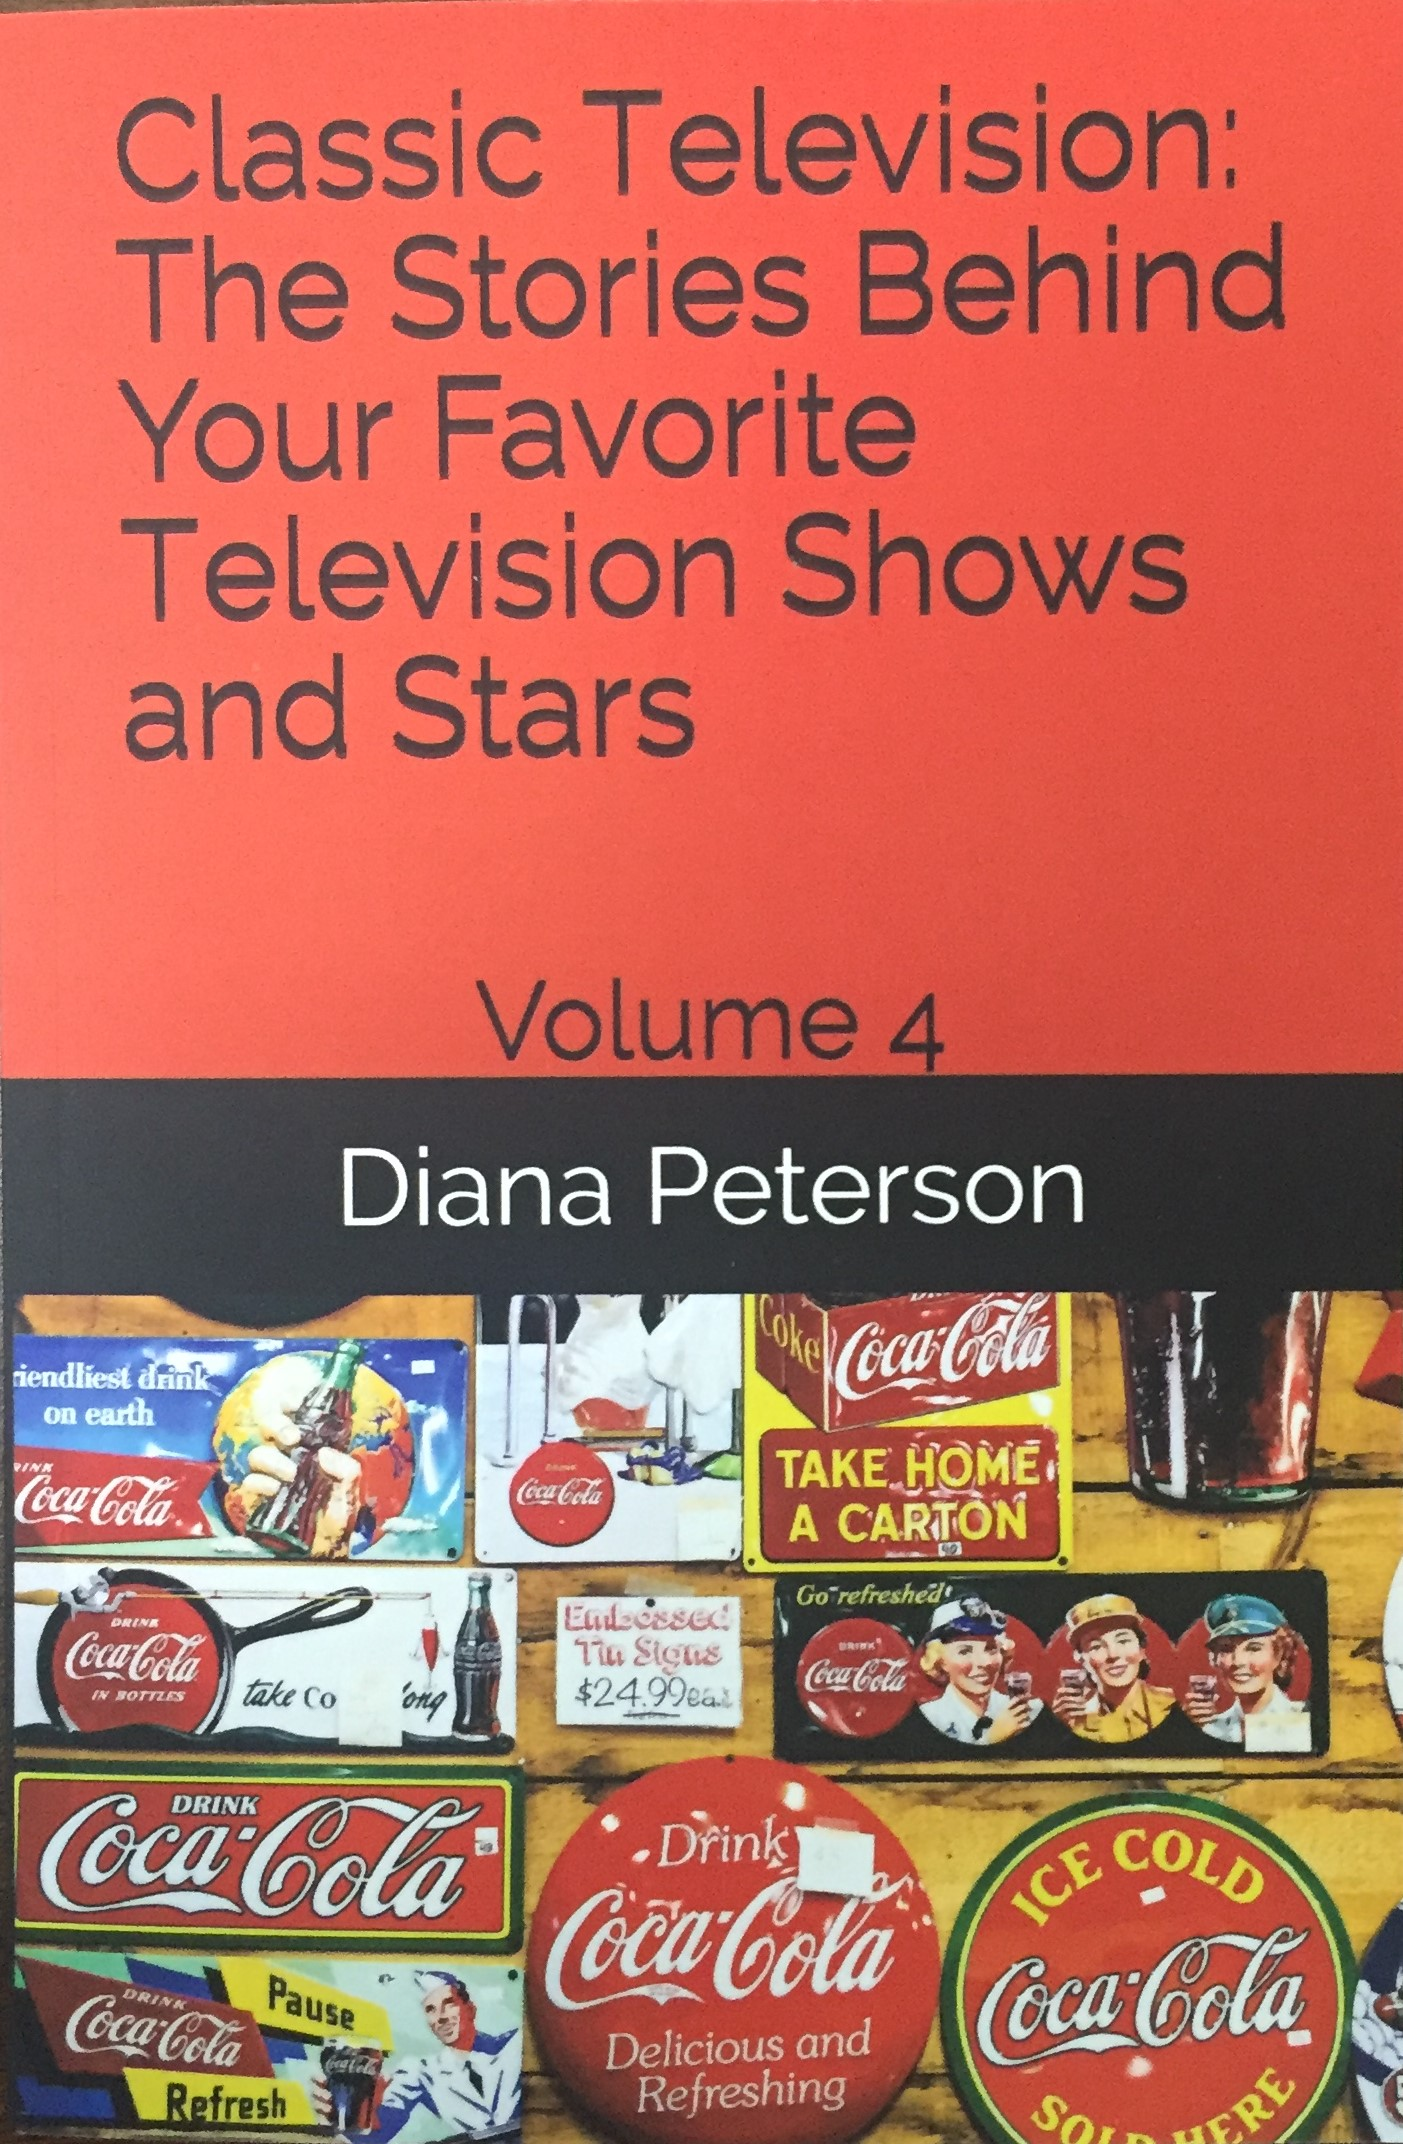 Classic Television: The Stories Behind Your Favorite Television Shows and Stars Volume 4